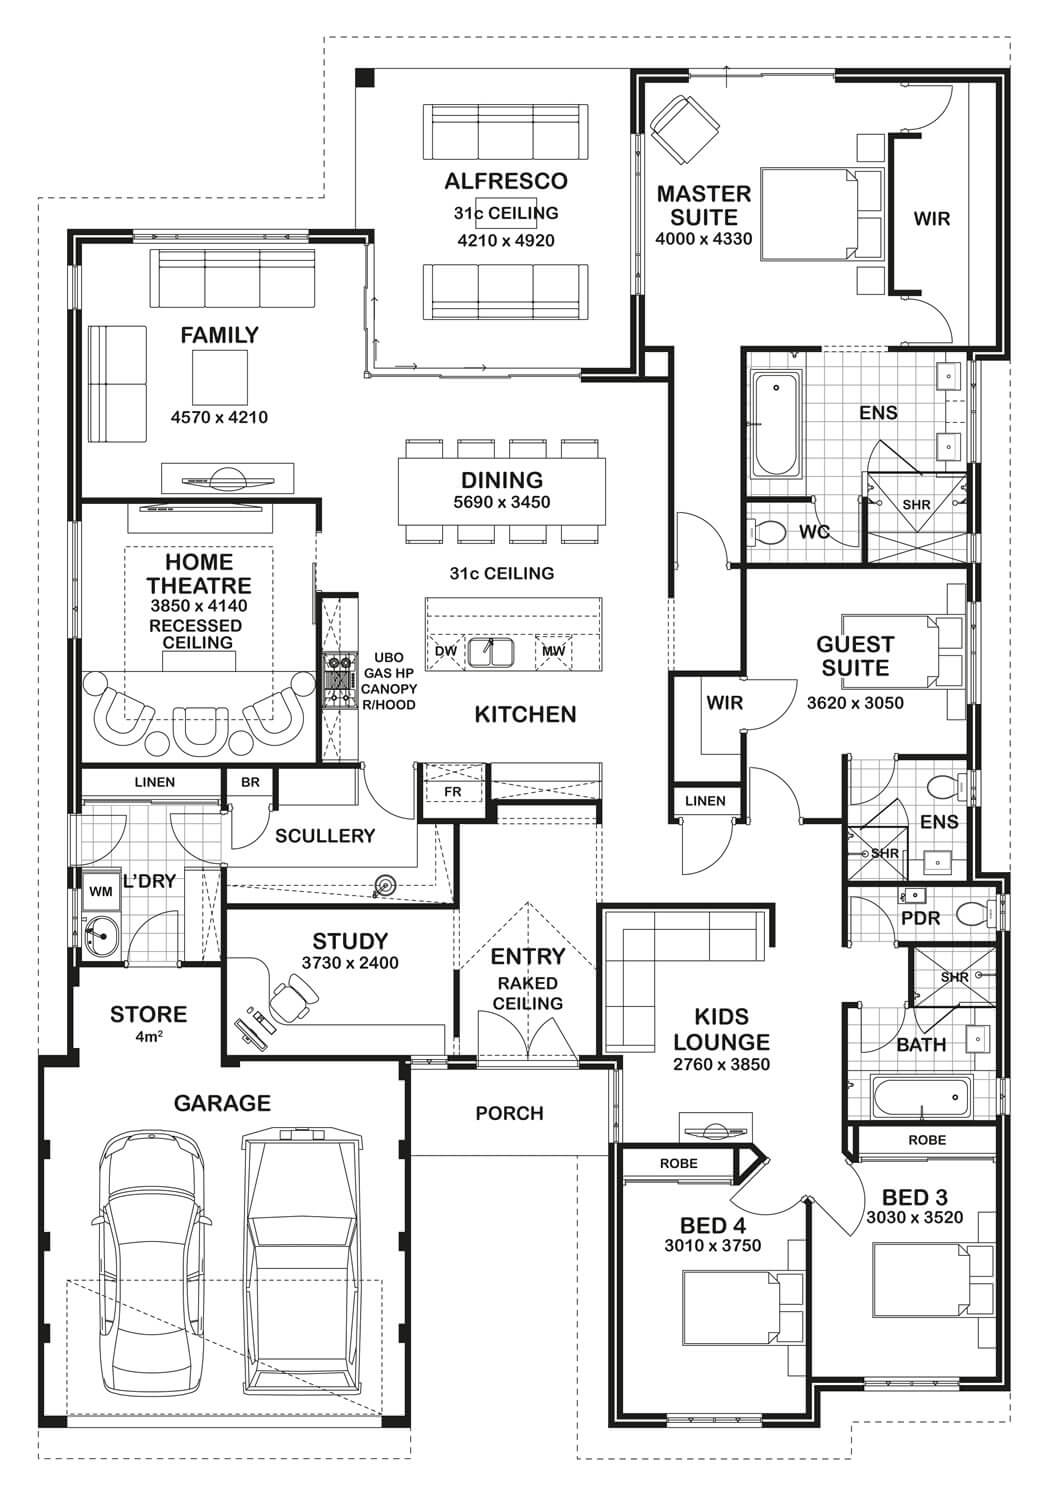 Floor Plan Friday Storage Laundry Scullery: floorplan com